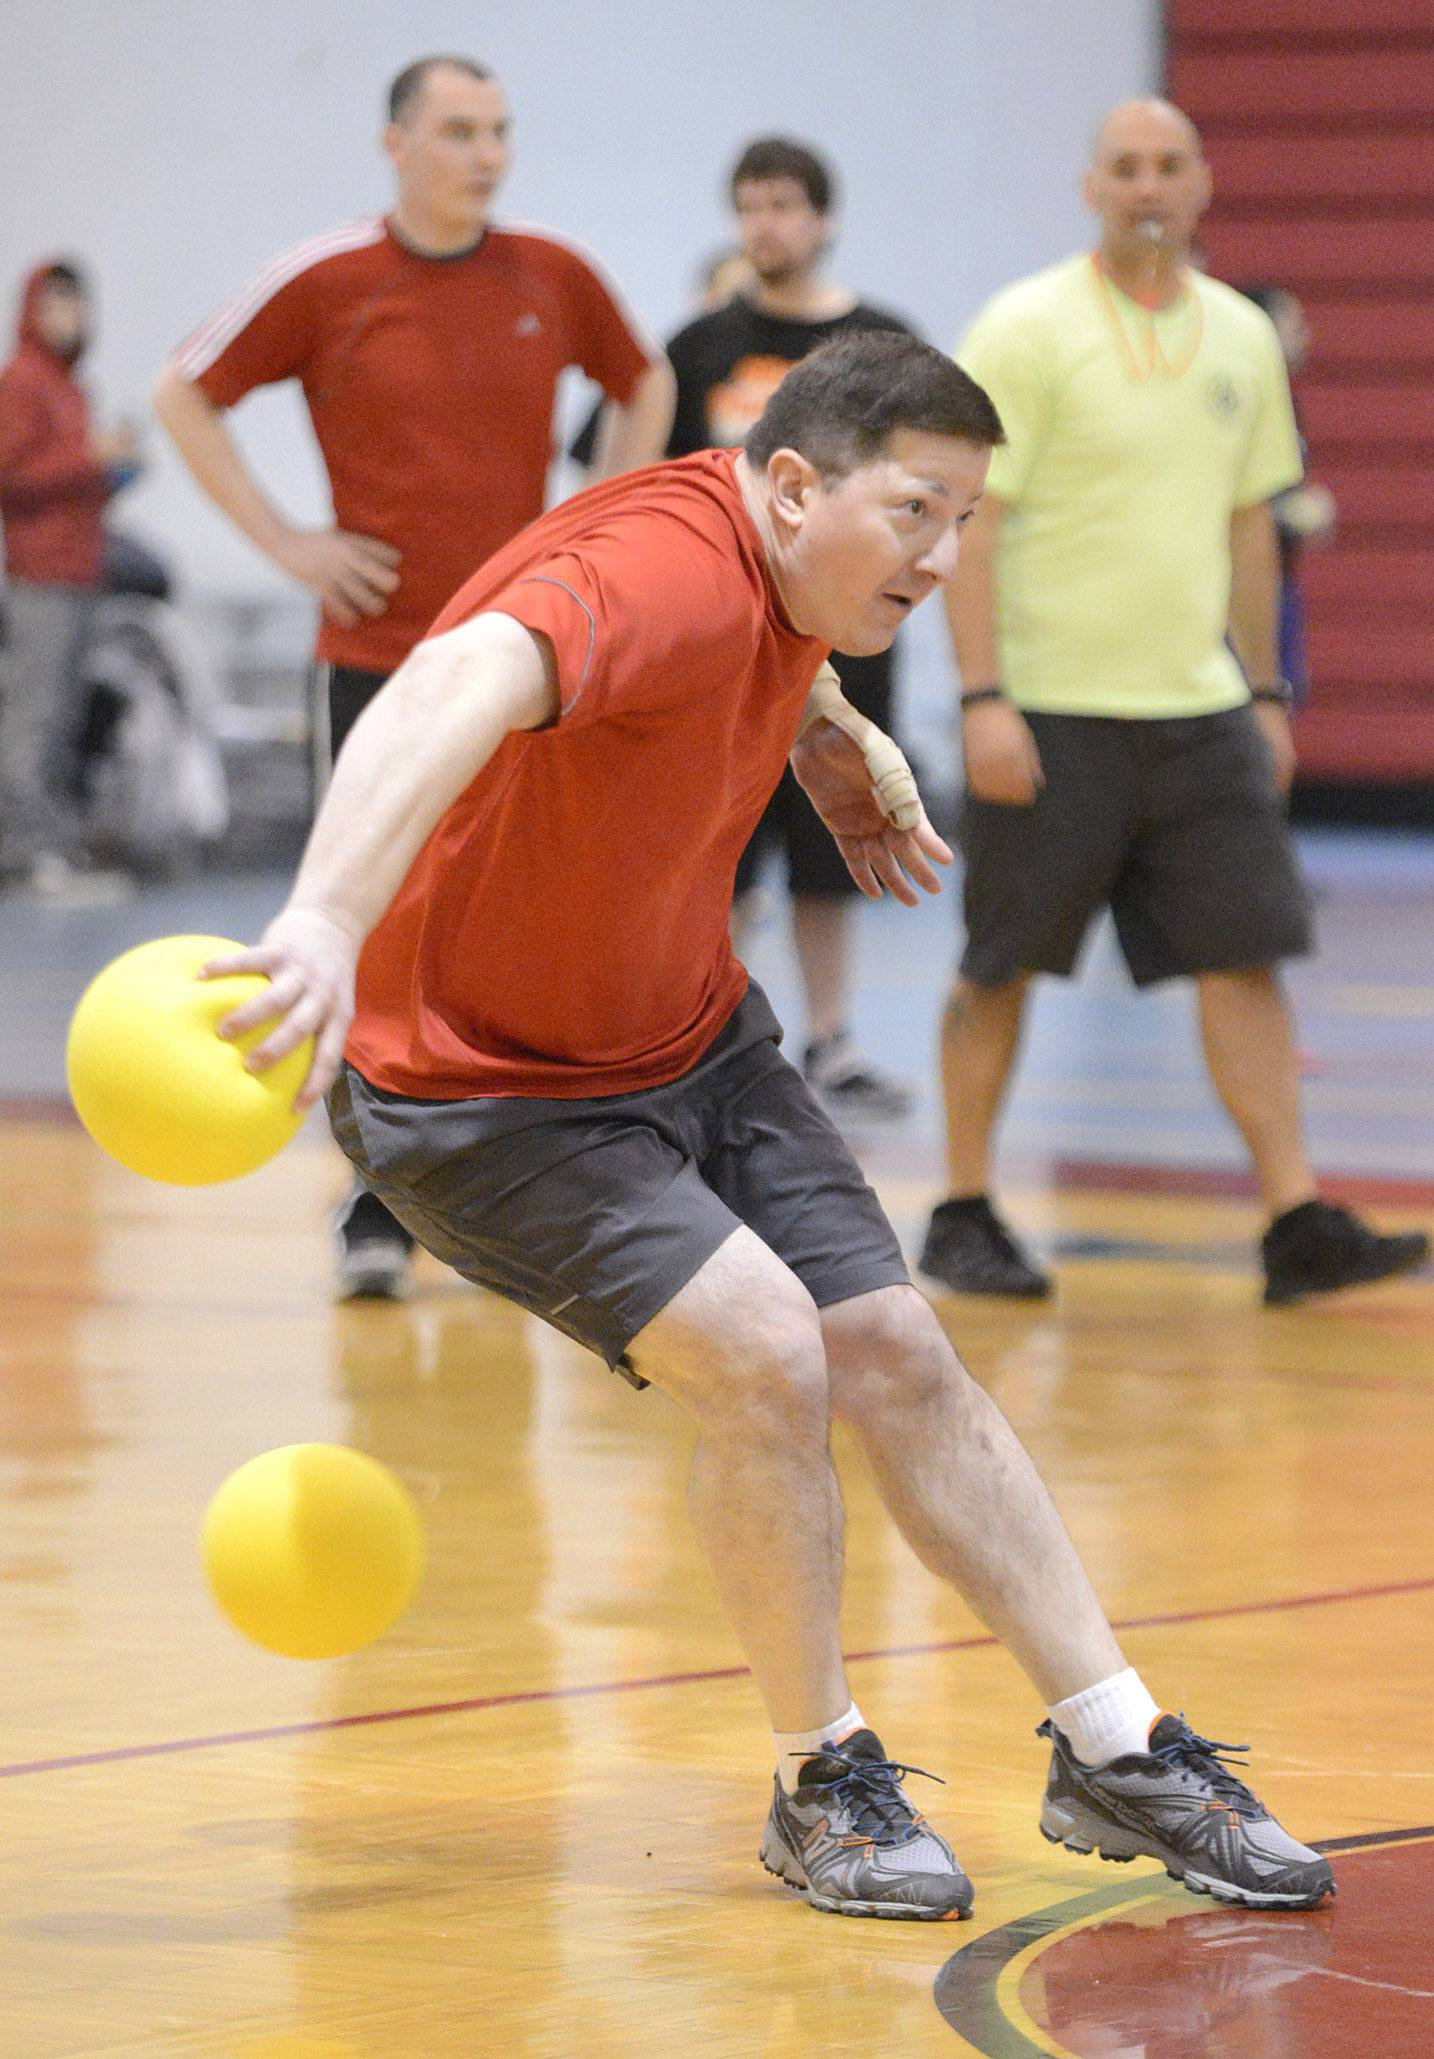 Mike Grezenko of Lombard and team PA Crimson twists to avoid being hit but gets nailed seconds later during a game at Carpentersville IAFF Local 4790's fourth annual dodgeball tournament at Dundee-Crown High School in Carpentersville on Saturday.